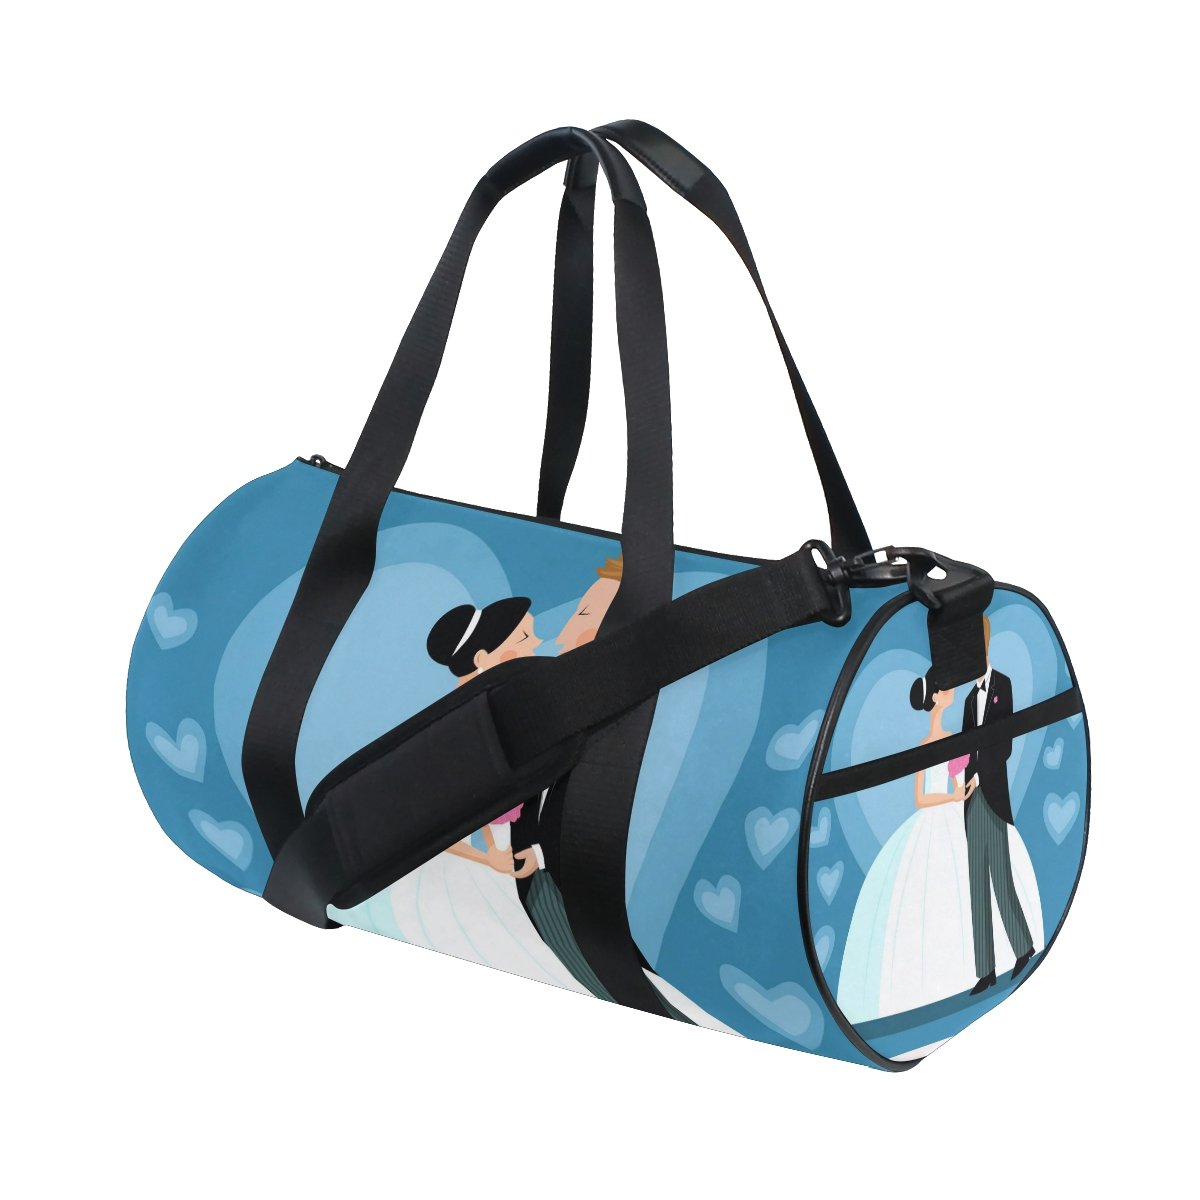 Wedding Party Lover You Bride and Groom Lightweight Canvas Sports Duffel Bag